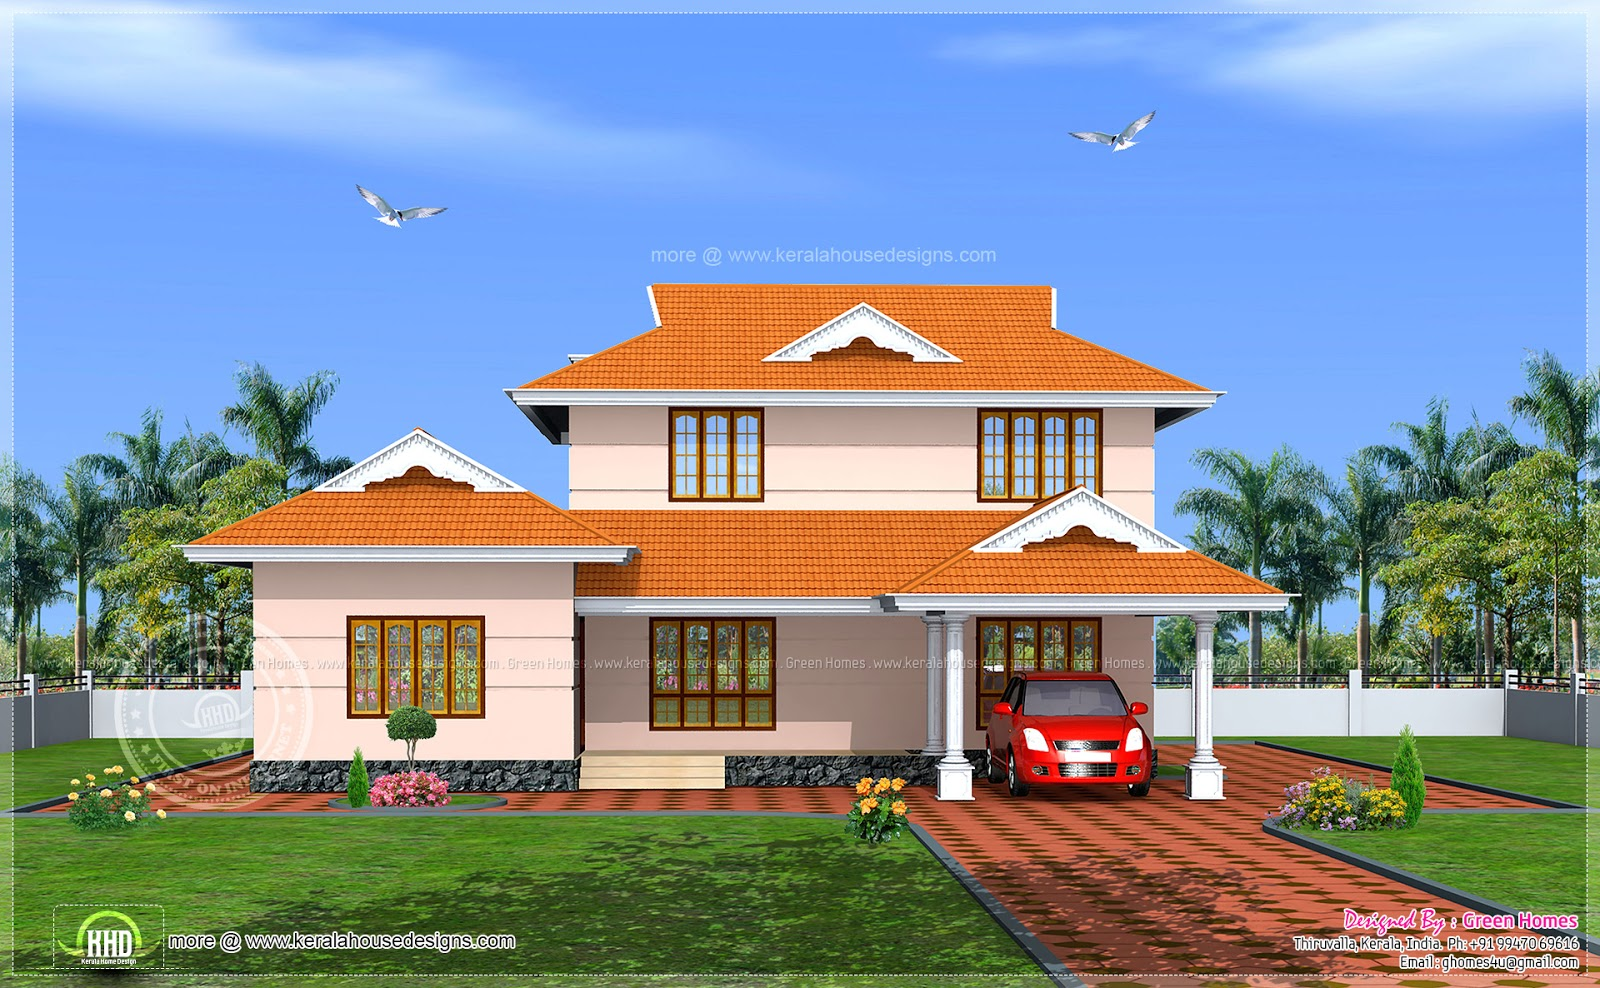 House plans and design house plans in kerala model with for Kerala house models photos